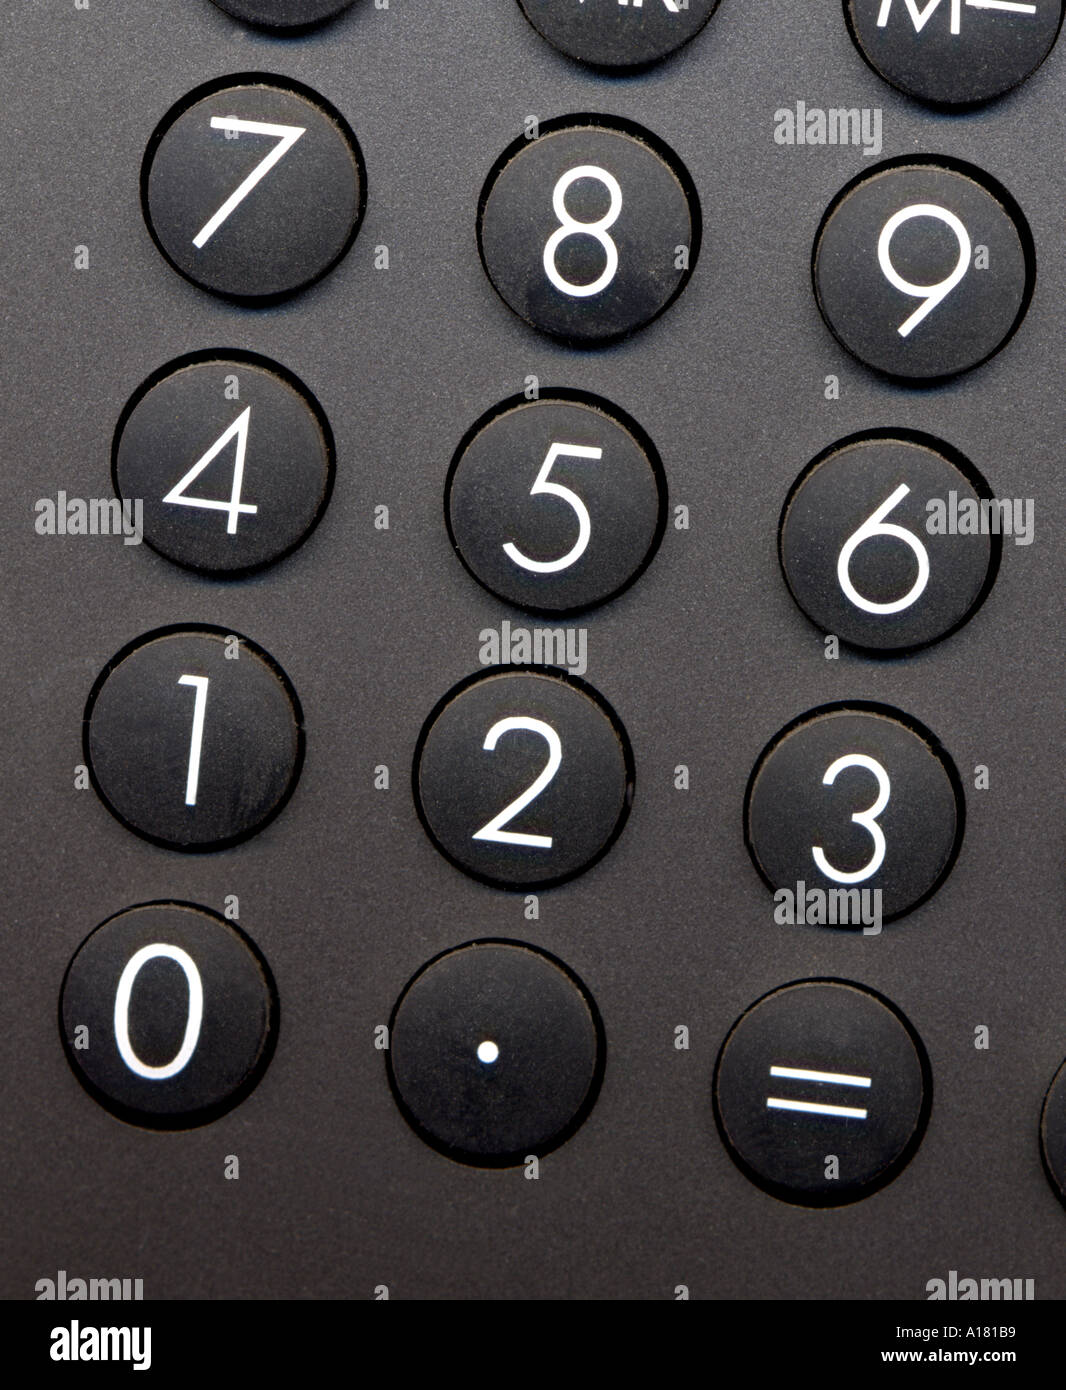 keyboard of a calculator arithmetical sum addition calculation numbers calculate office black keys - Stock Image